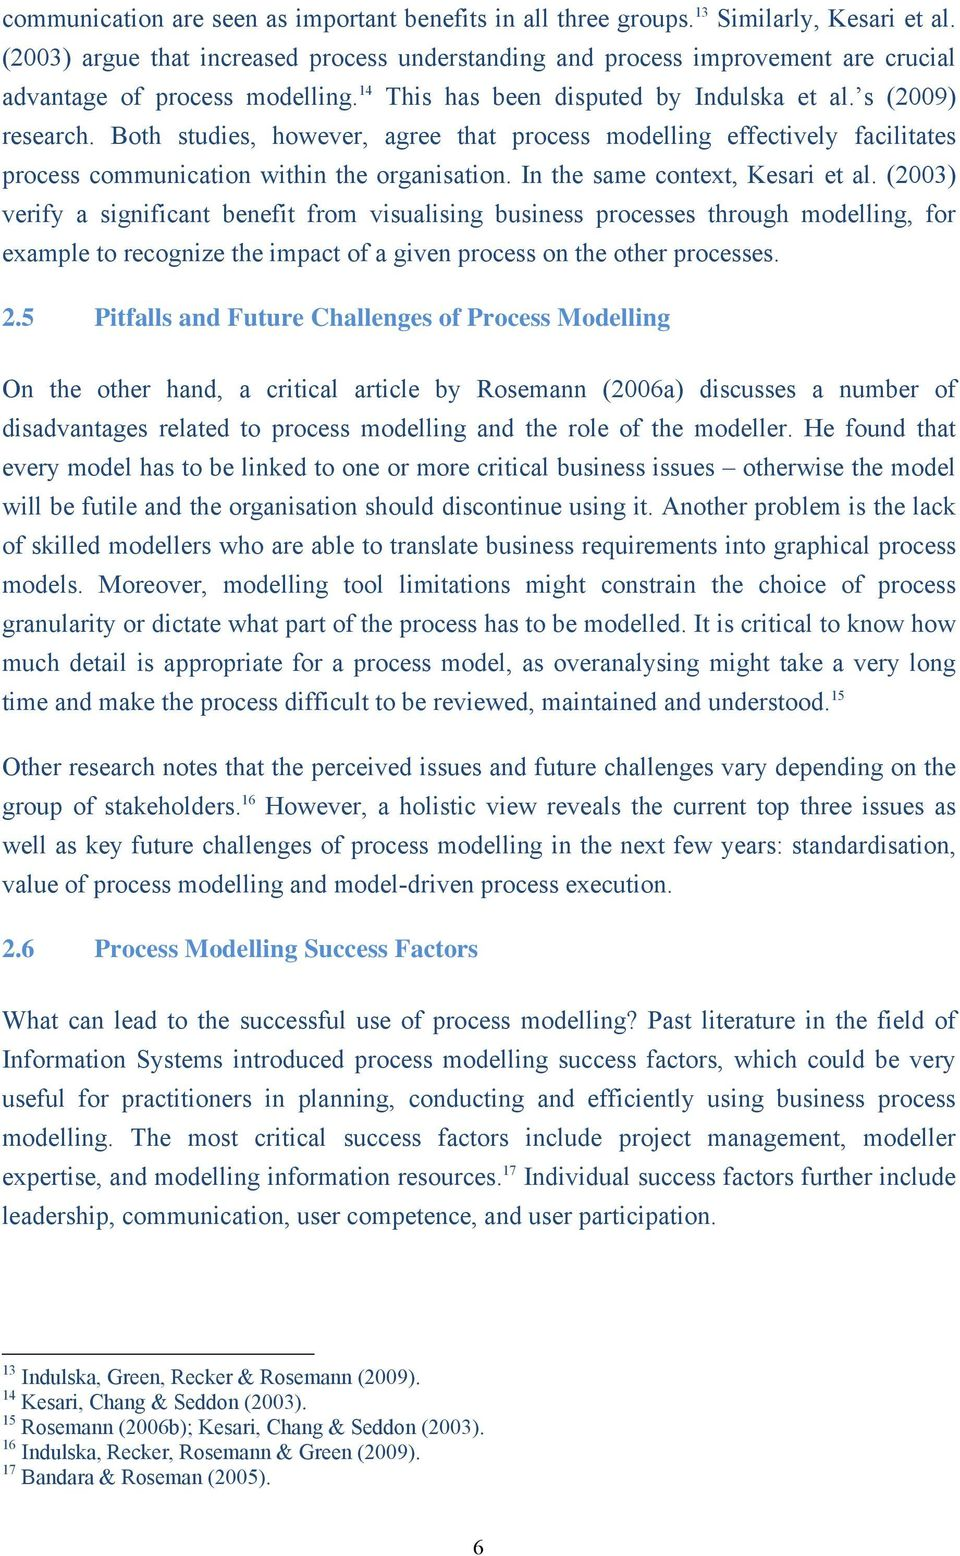 Both studies, however, agree that process modelling effectively facilitates process communication within the organisation. In the same context, Kesari et al.